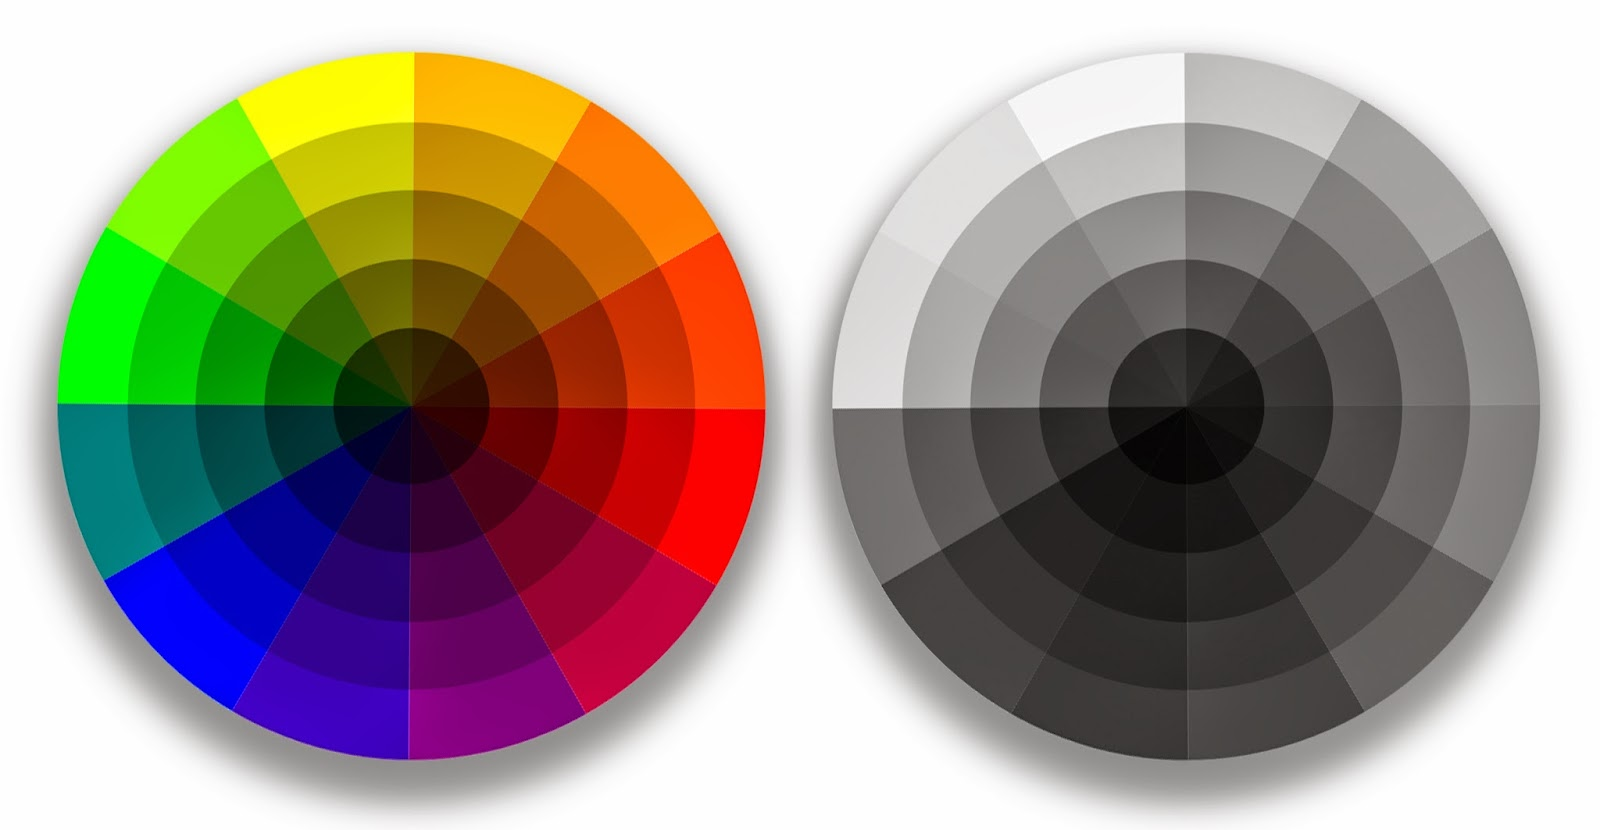 terry miura studio notes a little more on the color wheel